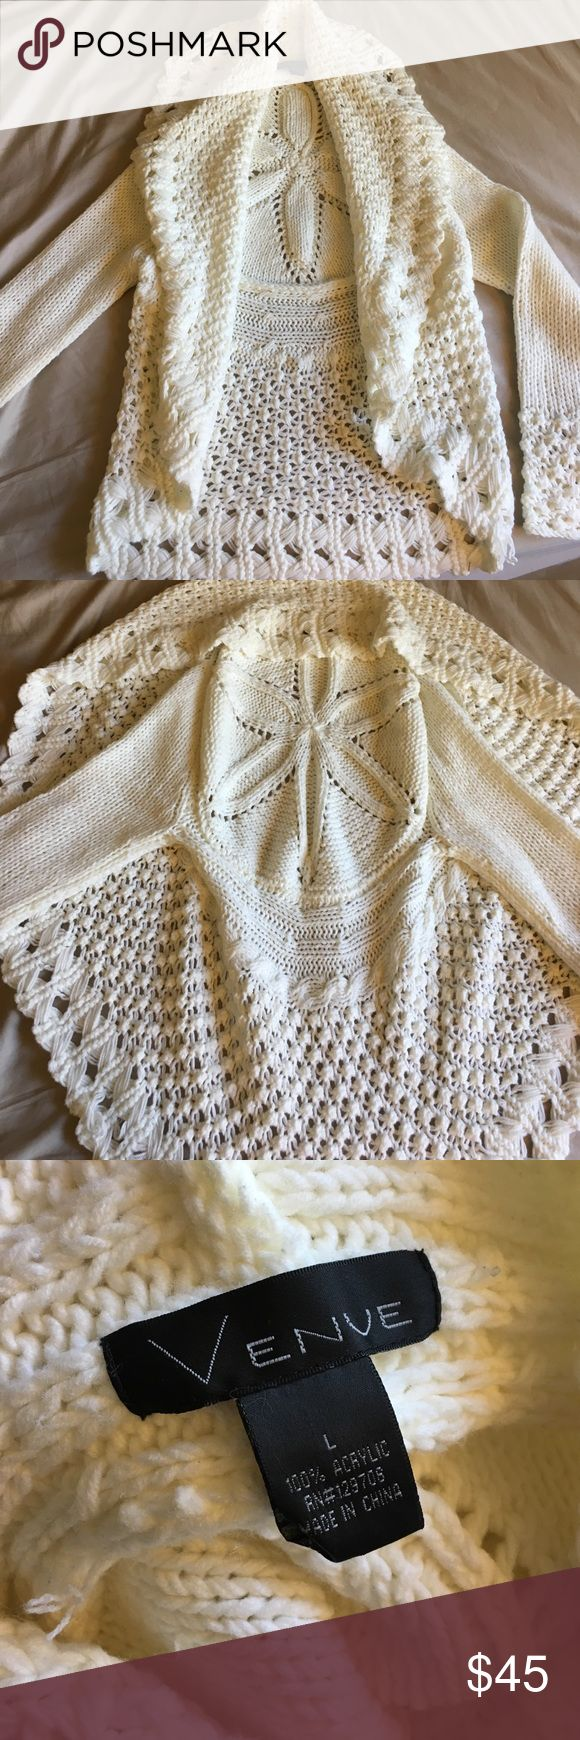 Off White Wedding Dress Cover Up Works great as a wedding dress cardigan! Be warm and elegant at your wedding!! Thick knit crochet sweater. Beautiful, bohemian, and figure flattering all in one!  Worn for literally 10 minutes at my wedding as I was leaving. Basically NWOT tags. Pictures make it look darker then it really is, it is a true off white in person. Venue Sweaters Cardigans